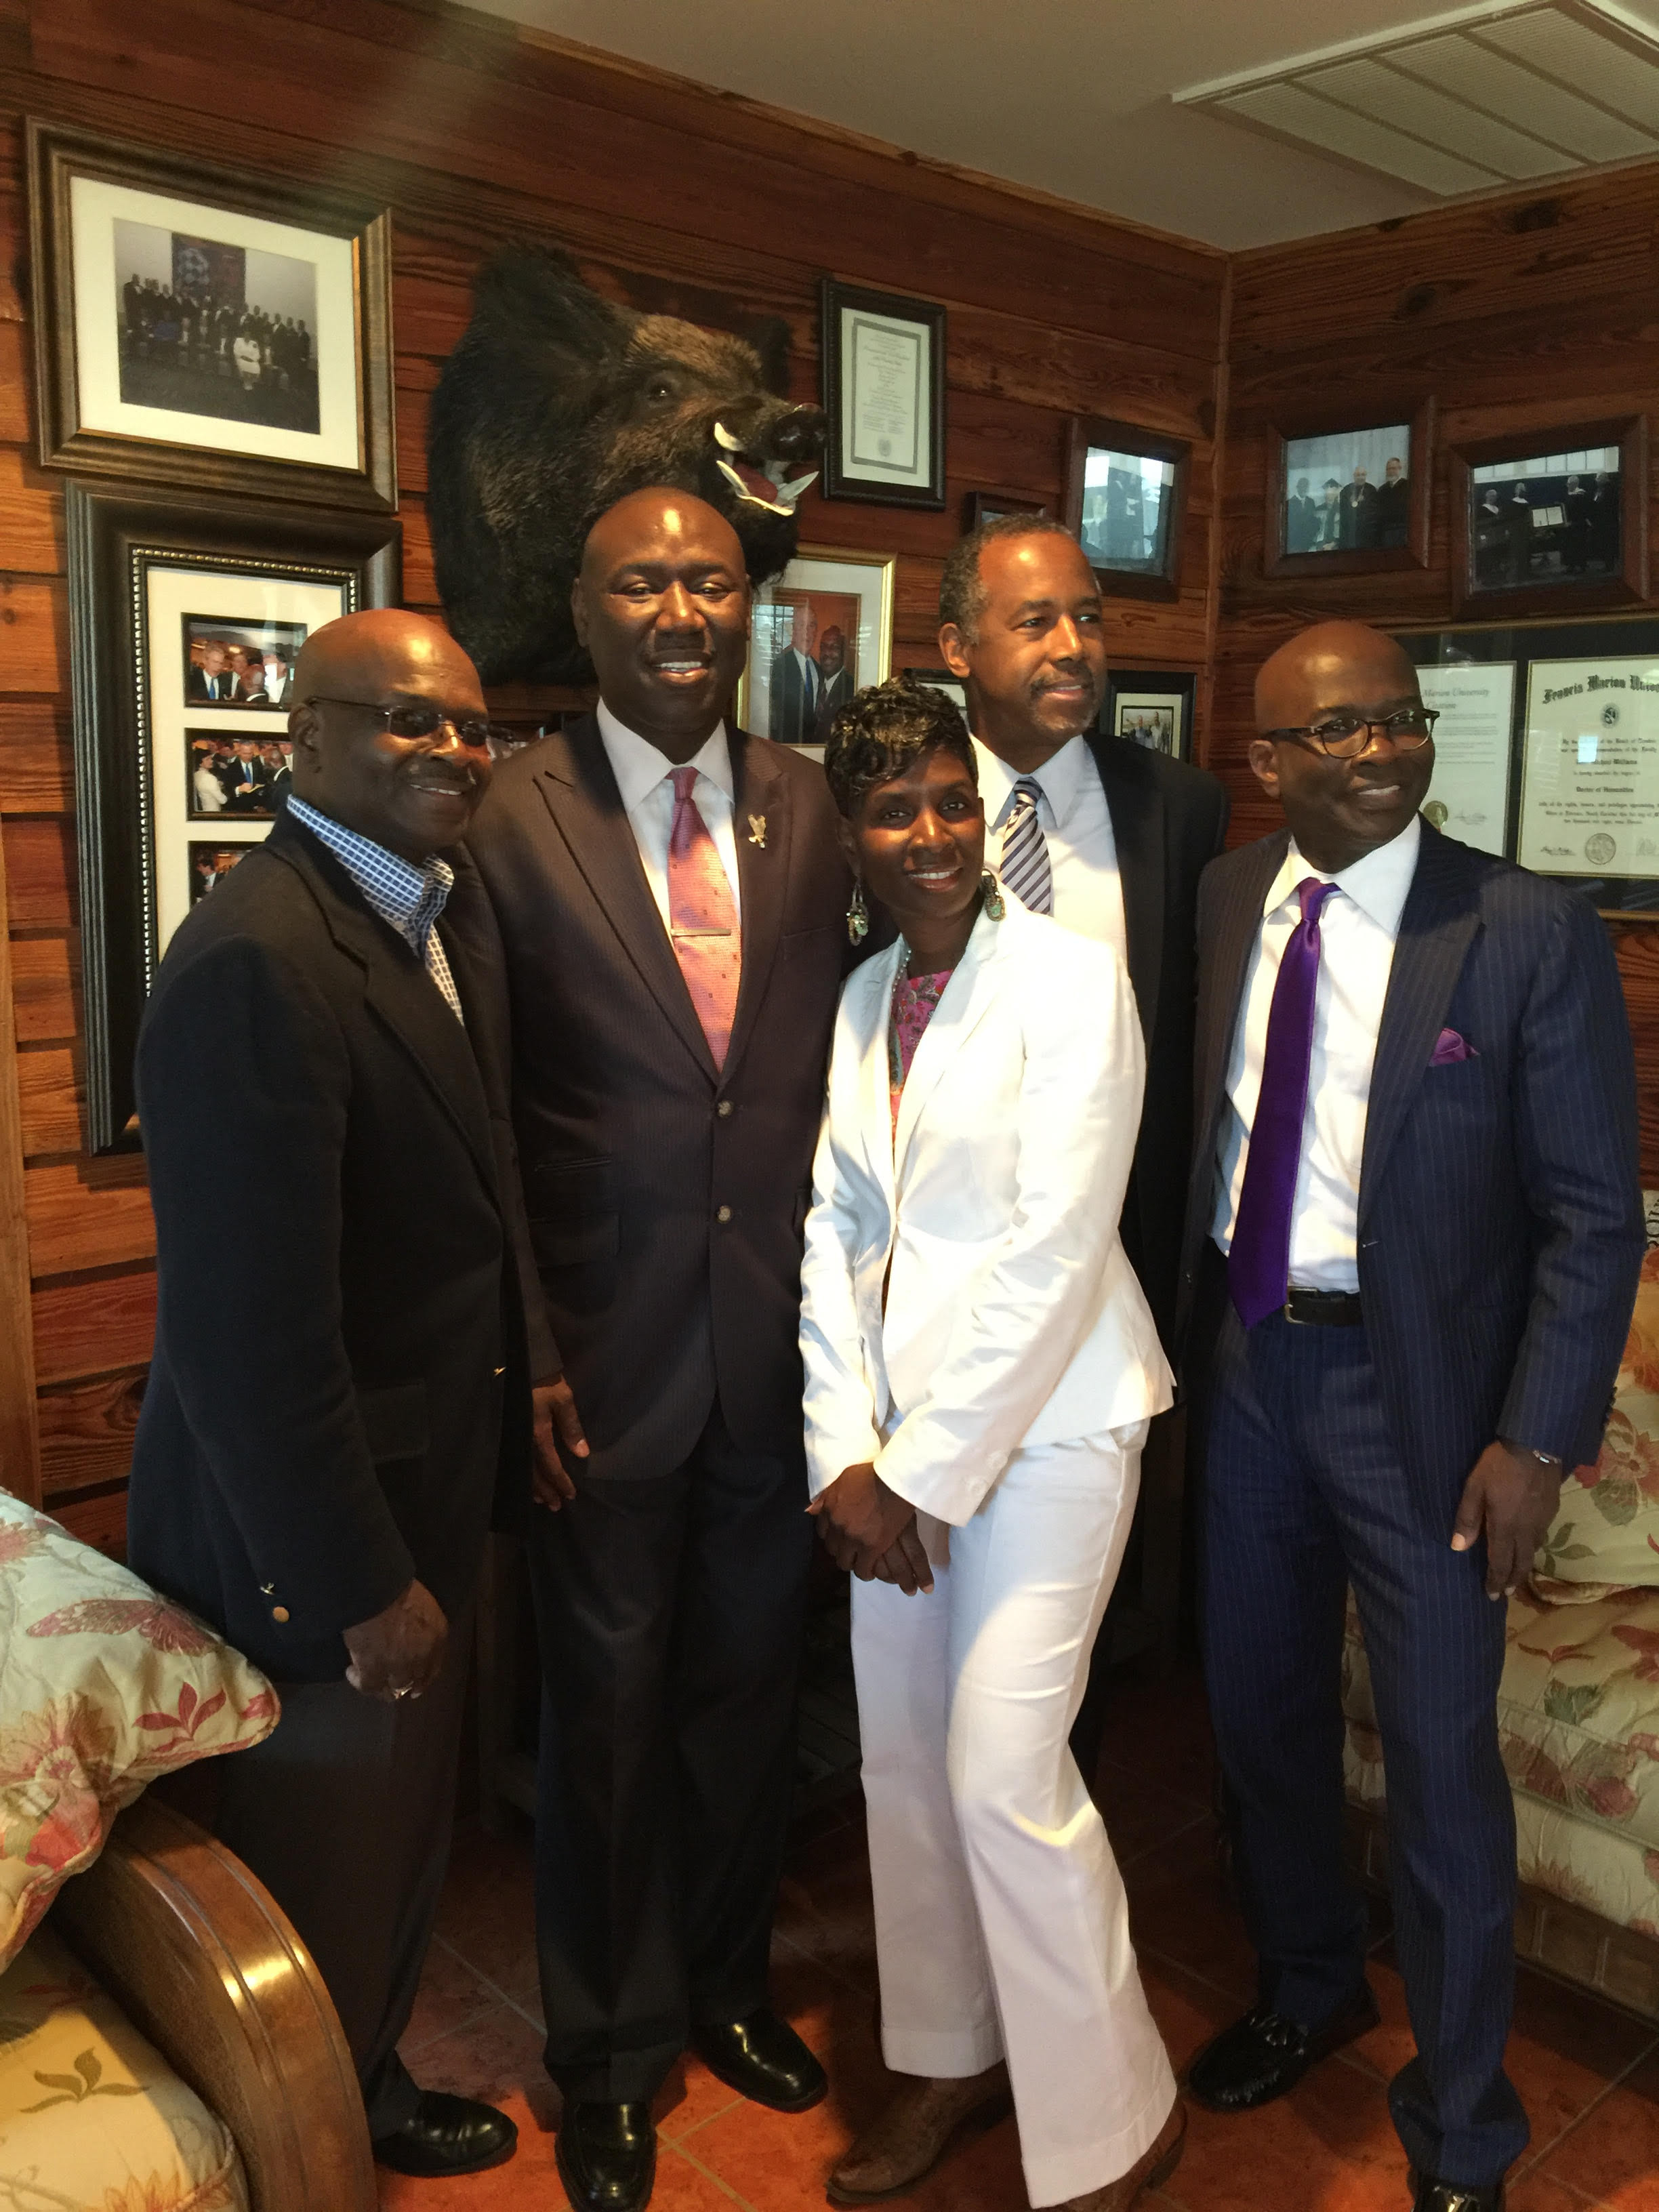 (From left to right:) Senator Kent Williams, Civil Rights Attorney Benjamin Crump, Mary Williams-Taylor, Renowned Pediatric Neurosurgeon Dr. Ben Carson, and Armstrong Williams